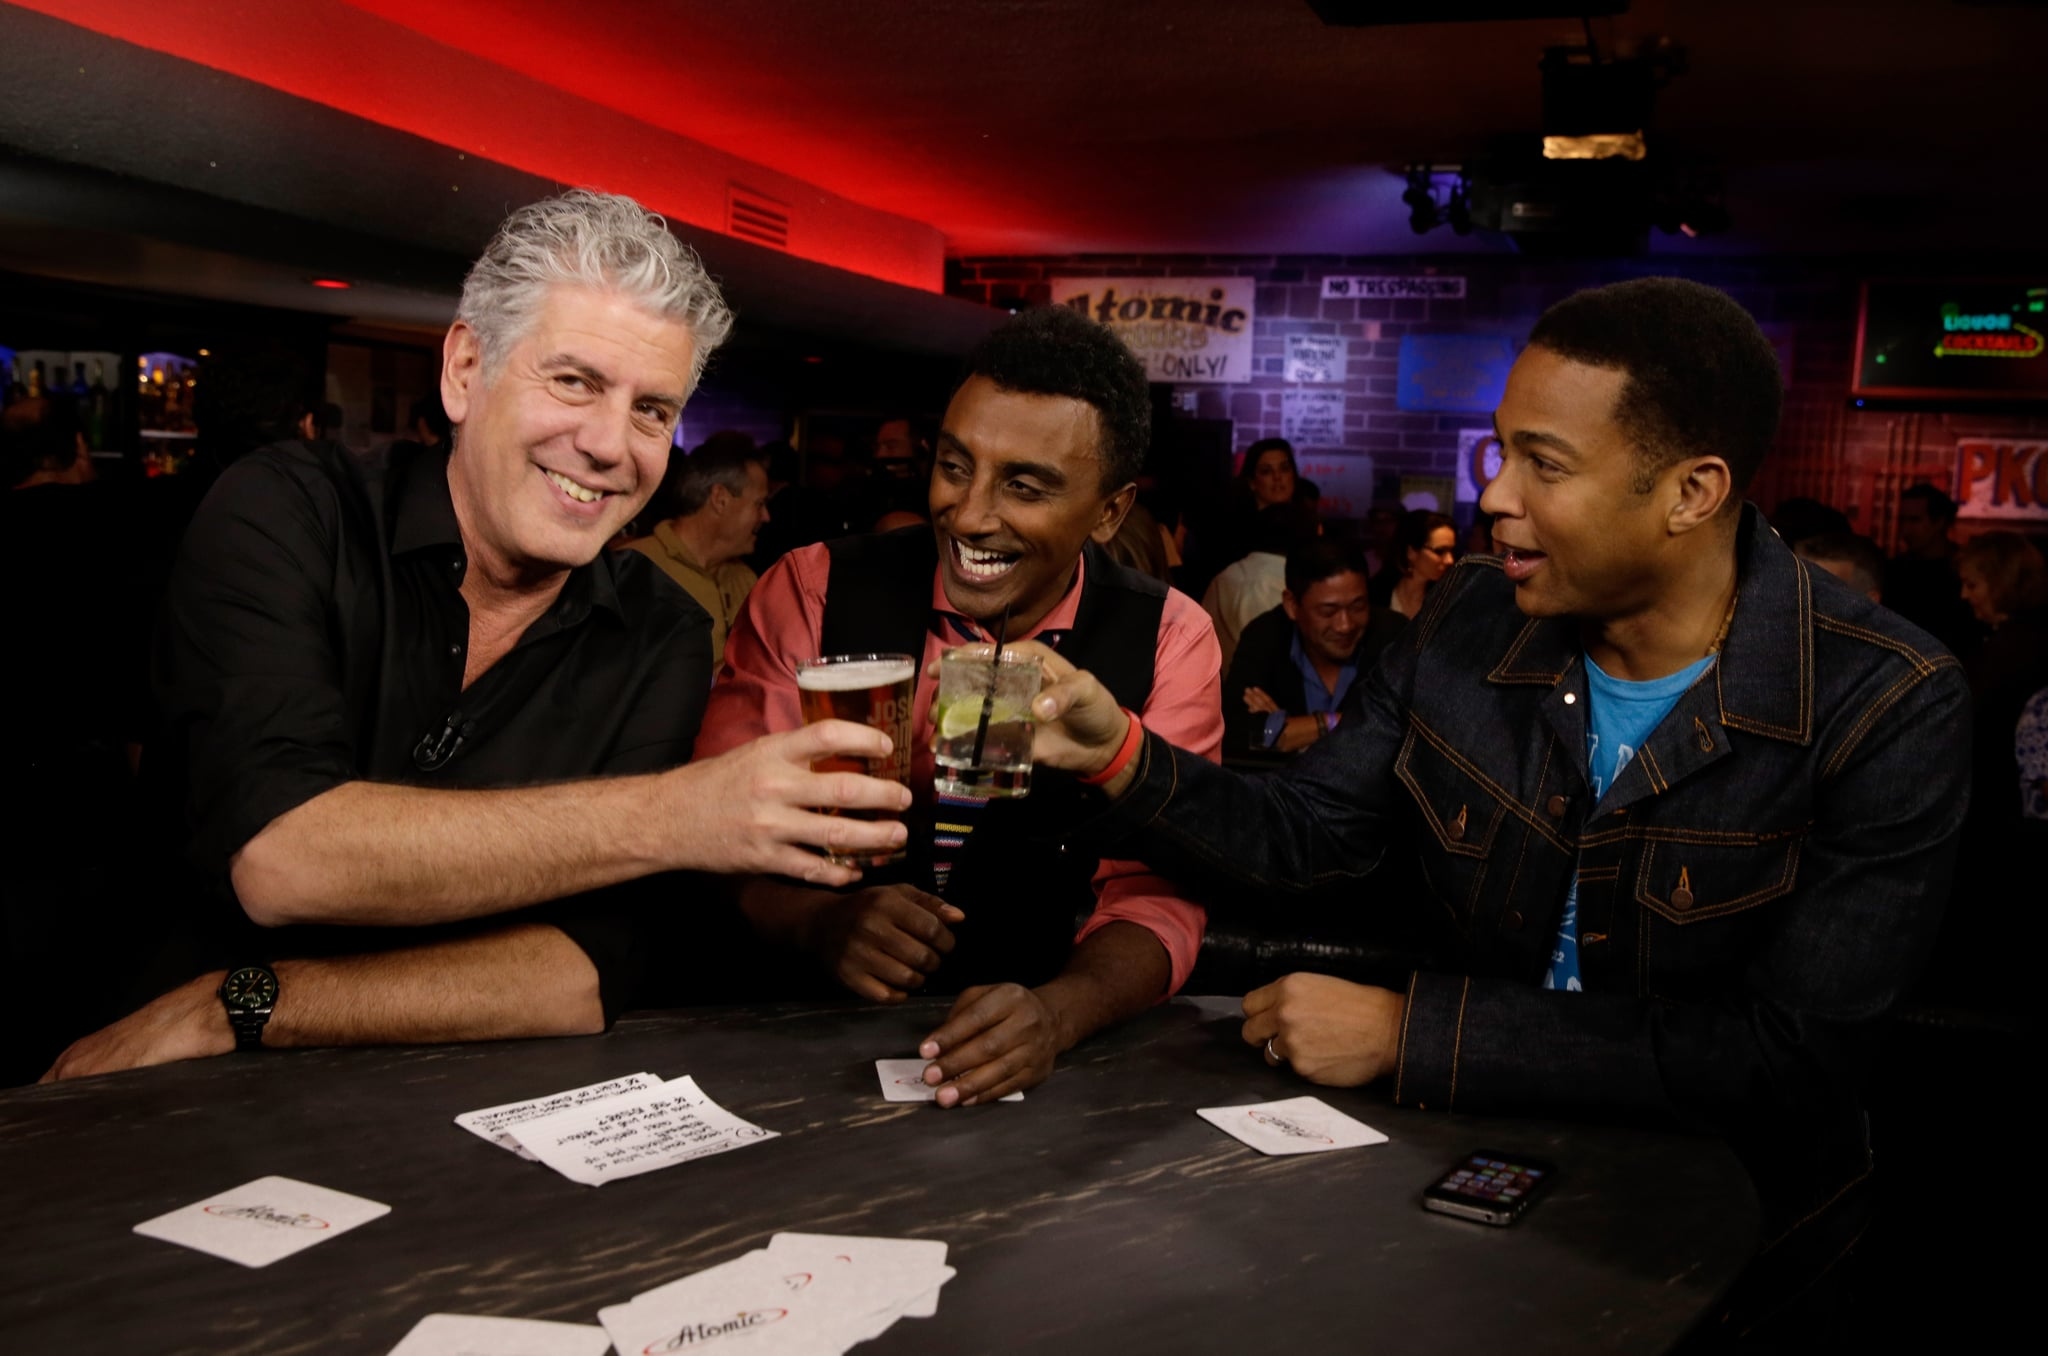 LAS VEGAS, NV - NOVEMBER 10:  (L-R) TV personality Anthony Bourdain, CNN anchor Don Lemon and chef Marcus Samuelsson attend